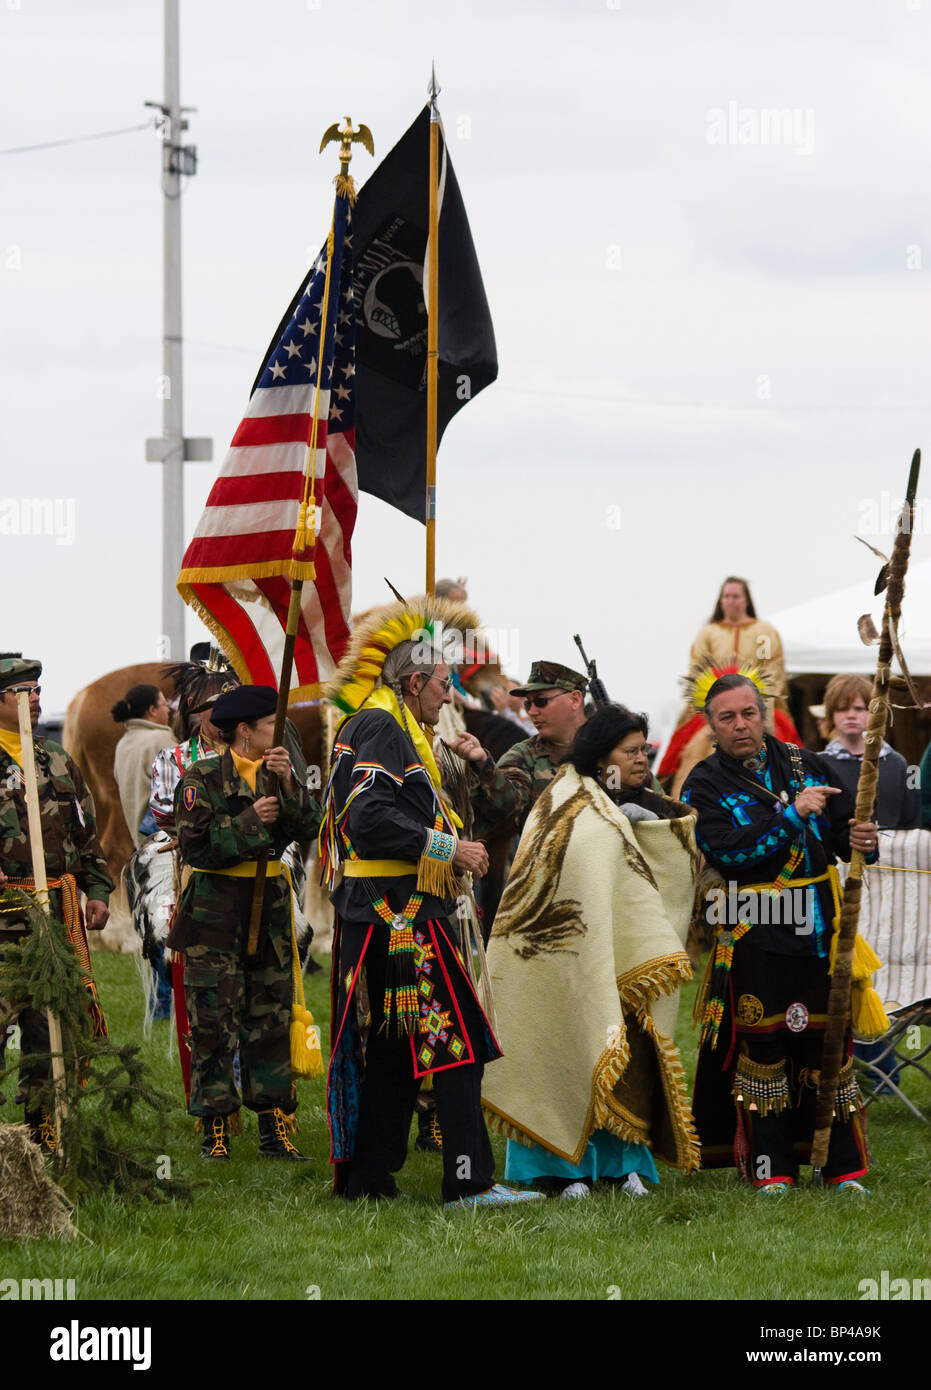 Native Americans at the Healing Horse Spirit PowWow in Mt. Airy, Maryland carry an American flag POW-MIA flag. - Stock Image